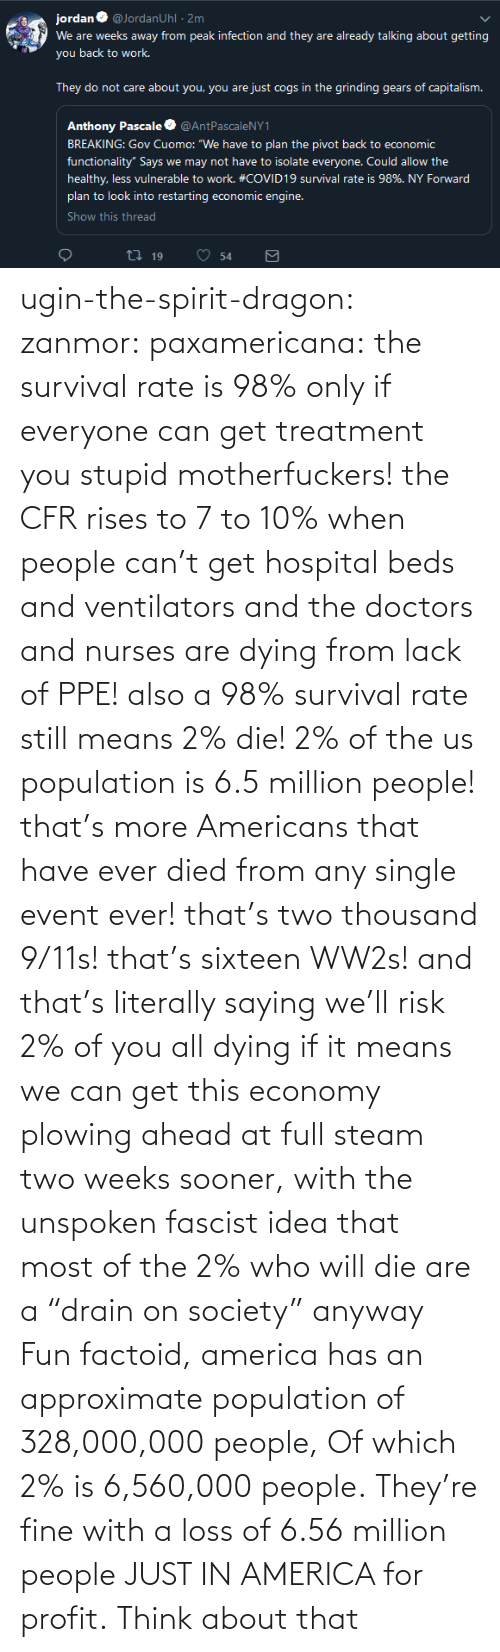 "society: ugin-the-spirit-dragon: zanmor:   paxamericana:  the survival rate is 98% only if everyone can get treatment you stupid motherfuckers! the CFR rises to 7 to 10% when people can't get hospital beds and ventilators and the doctors and nurses are dying from lack of PPE!  also a 98% survival rate still means 2% die! 2% of the us population is 6.5 million people! that's more Americans that have ever died from any single event ever! that's two thousand 9/11s! that's sixteen WW2s!  and that's literally saying we'll risk 2% of you all dying if it means we can get this economy plowing ahead at full steam two weeks sooner, with the unspoken fascist idea that most of the 2% who will die are a ""drain on society"" anyway    Fun factoid, america has an approximate population of 328,000,000 people,  Of which 2% is 6,560,000 people. They're fine with a loss of 6.56 million people JUST IN AMERICA for profit. Think about that"